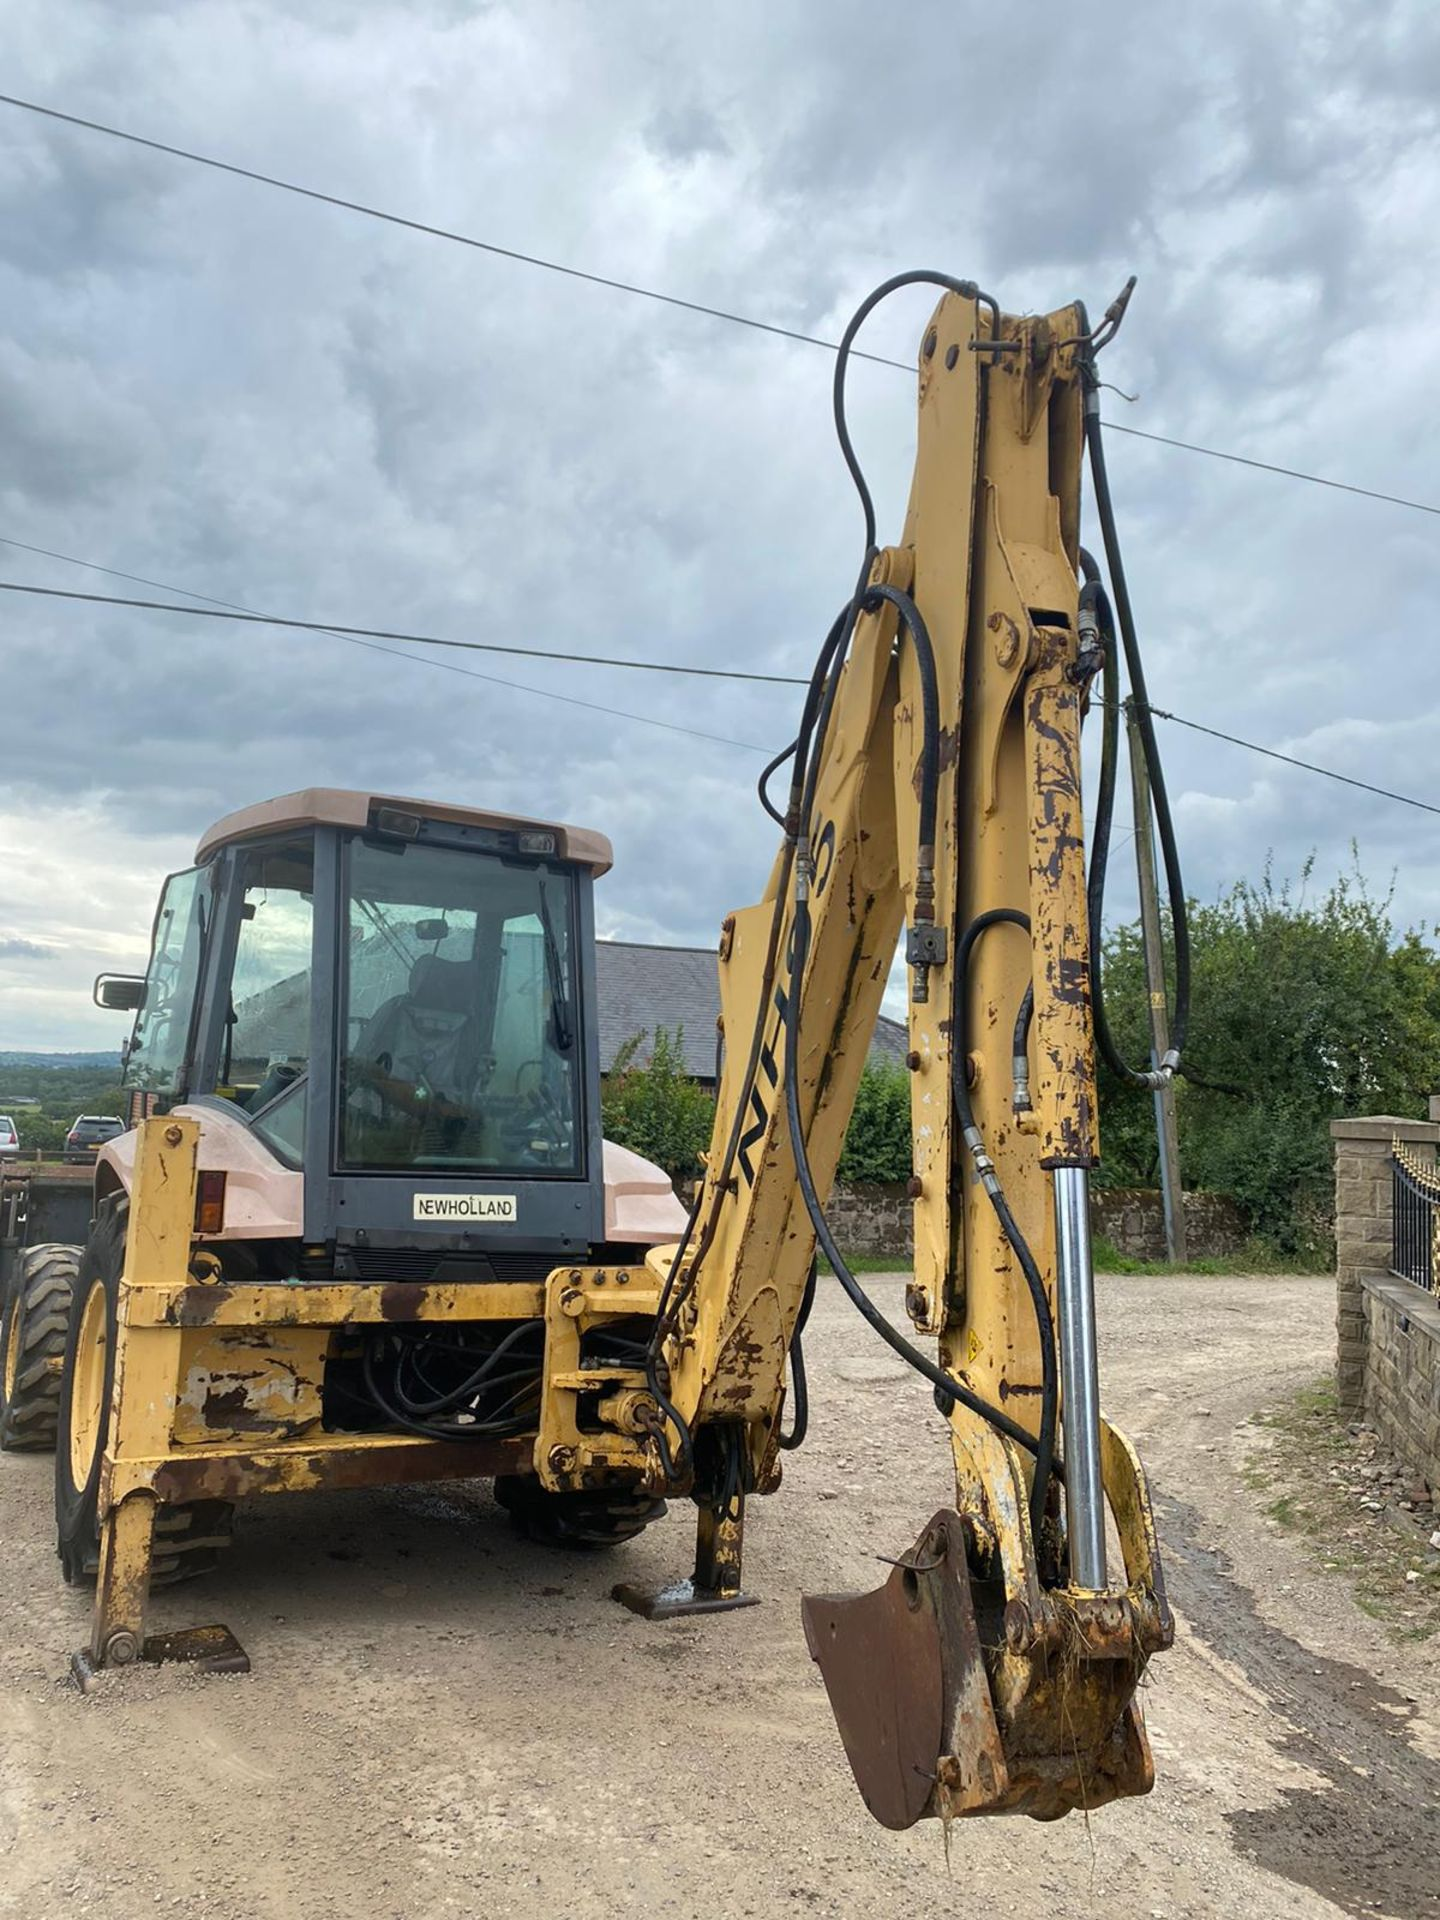 NEWHOLLAND NH95 DIGGER LOADER, 4 WHEEL DRIVE, 4-IN-1 BUCKET, EXTRA DIG, RUNS, WORKS AND DIGS - Image 2 of 8